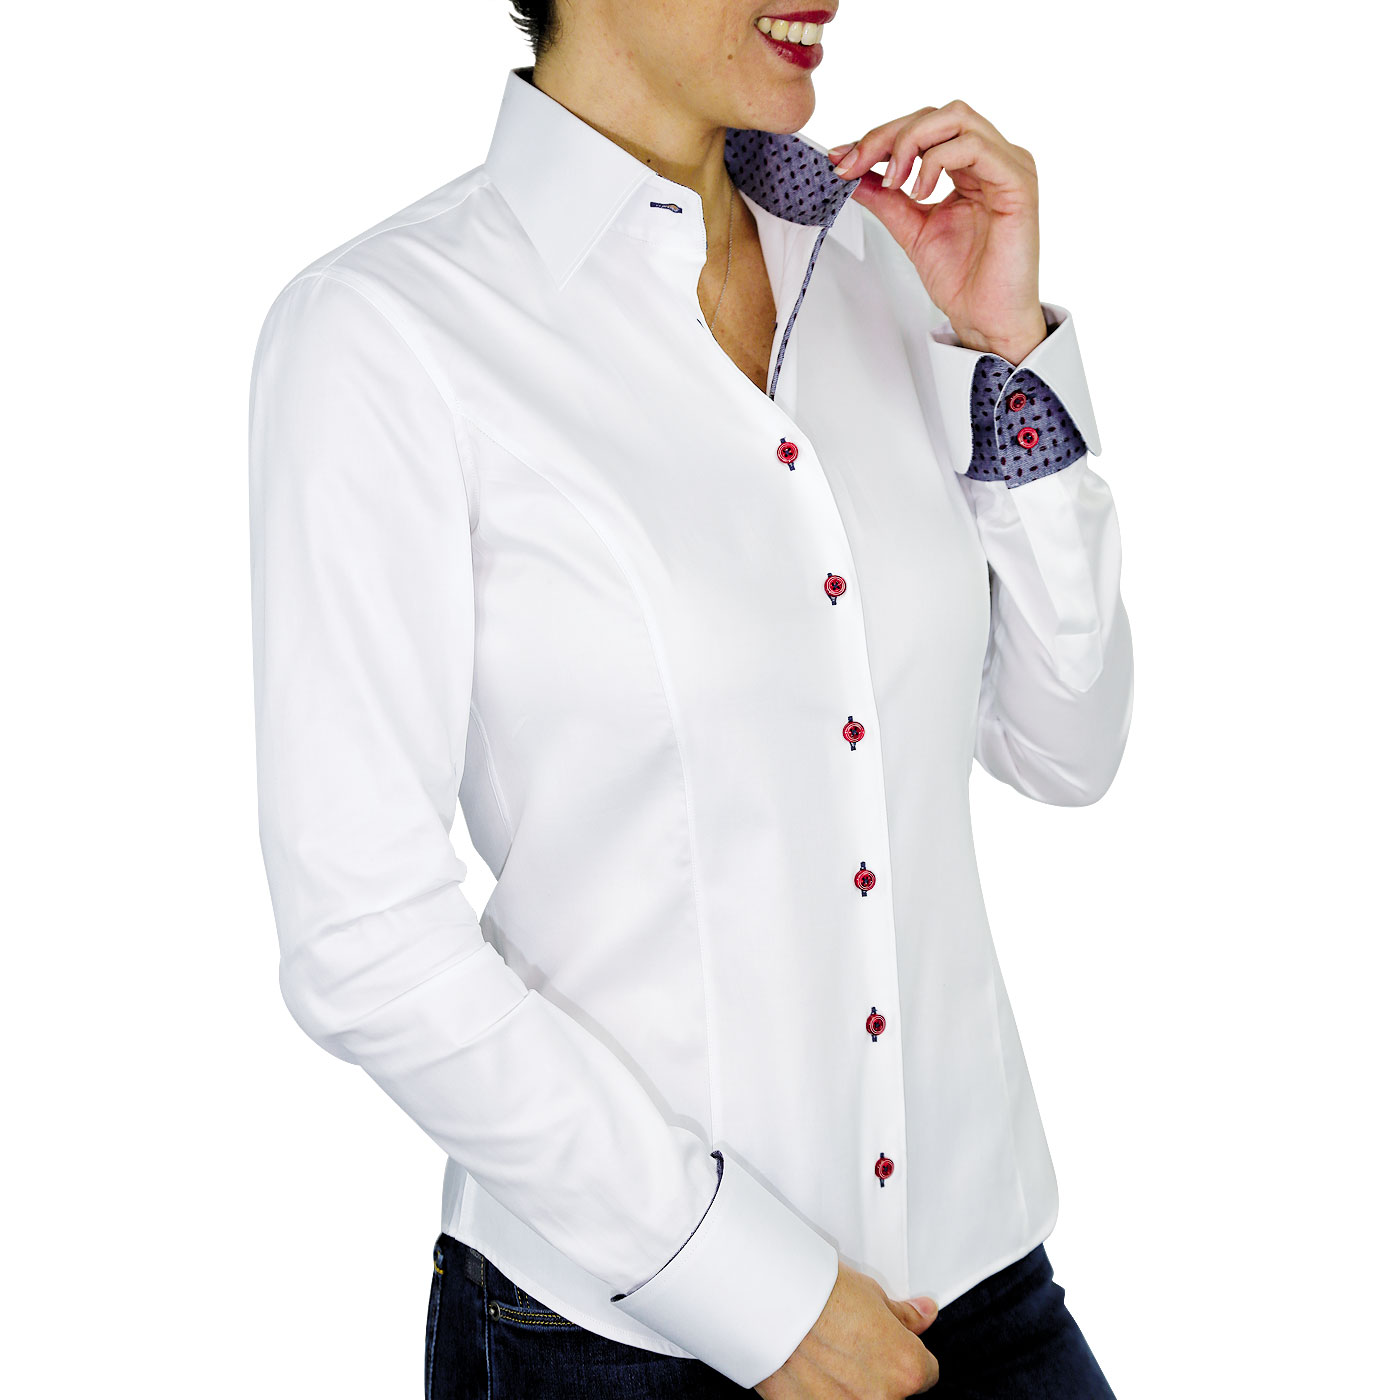 White Women's Shirt Napolitains Cuffs